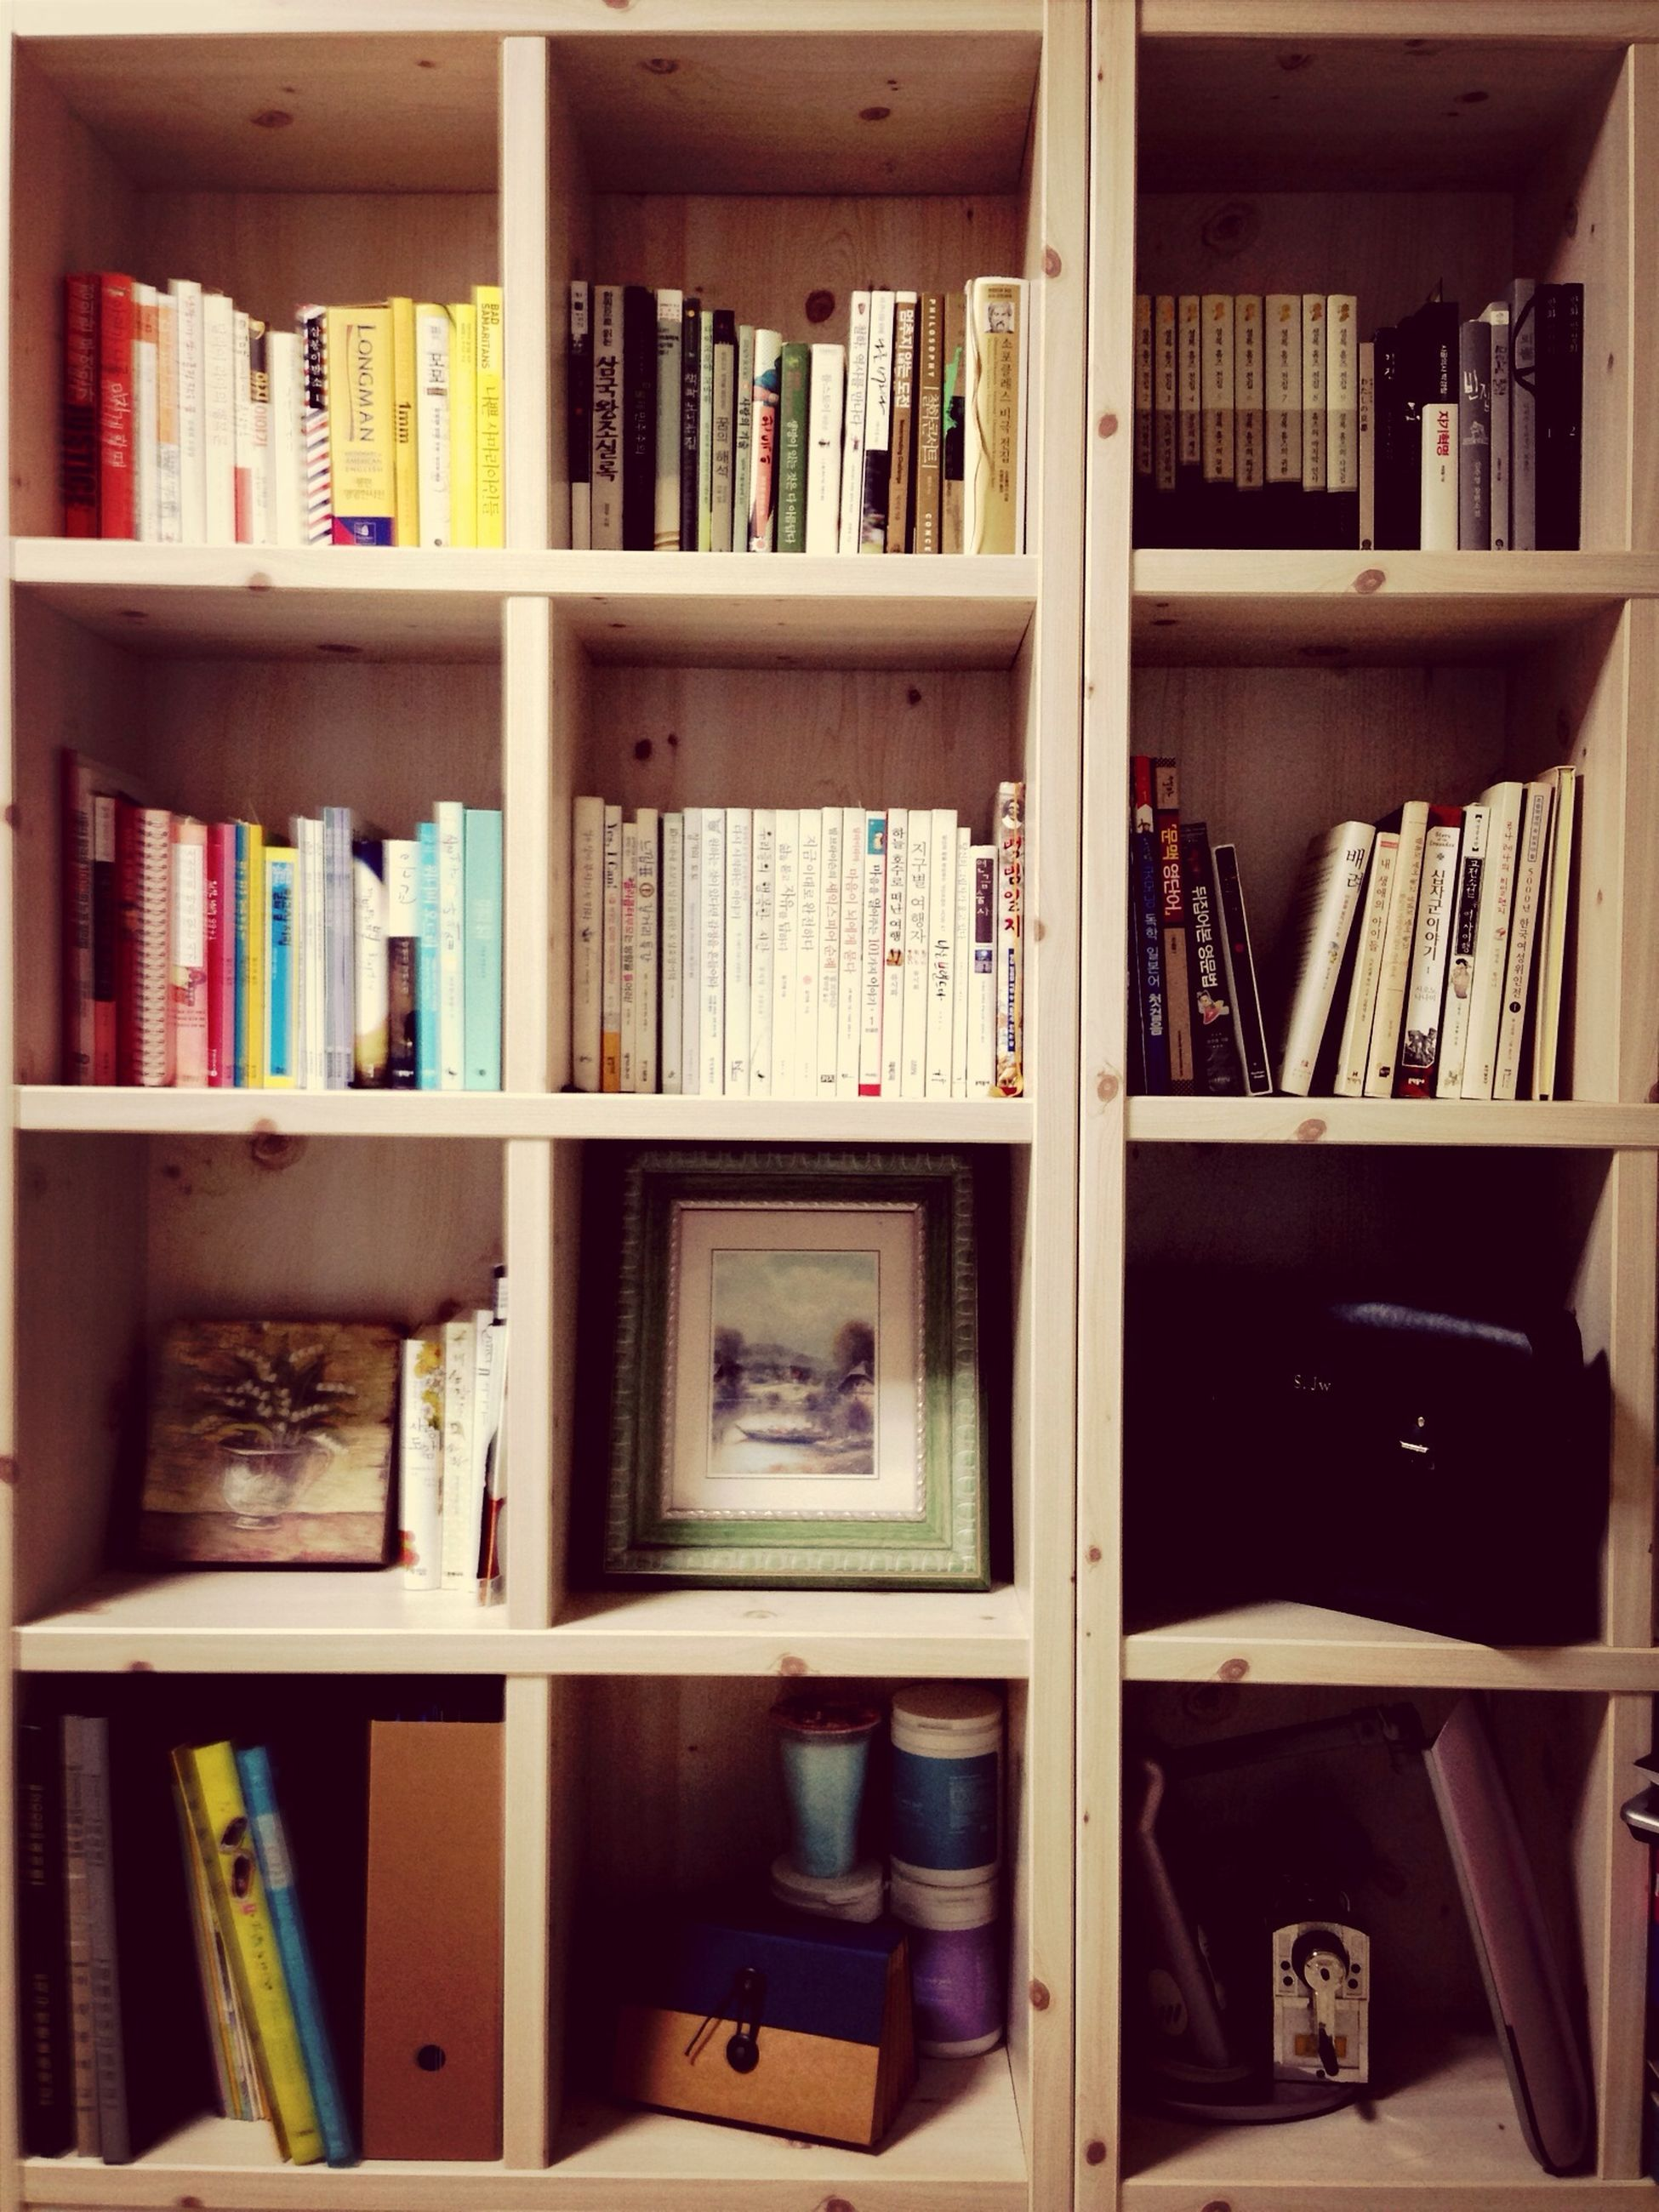 indoors, shelf, large group of objects, book, variation, bookshelf, arrangement, abundance, choice, order, education, still life, in a row, collection, stack, wood - material, desk, table, literature, store